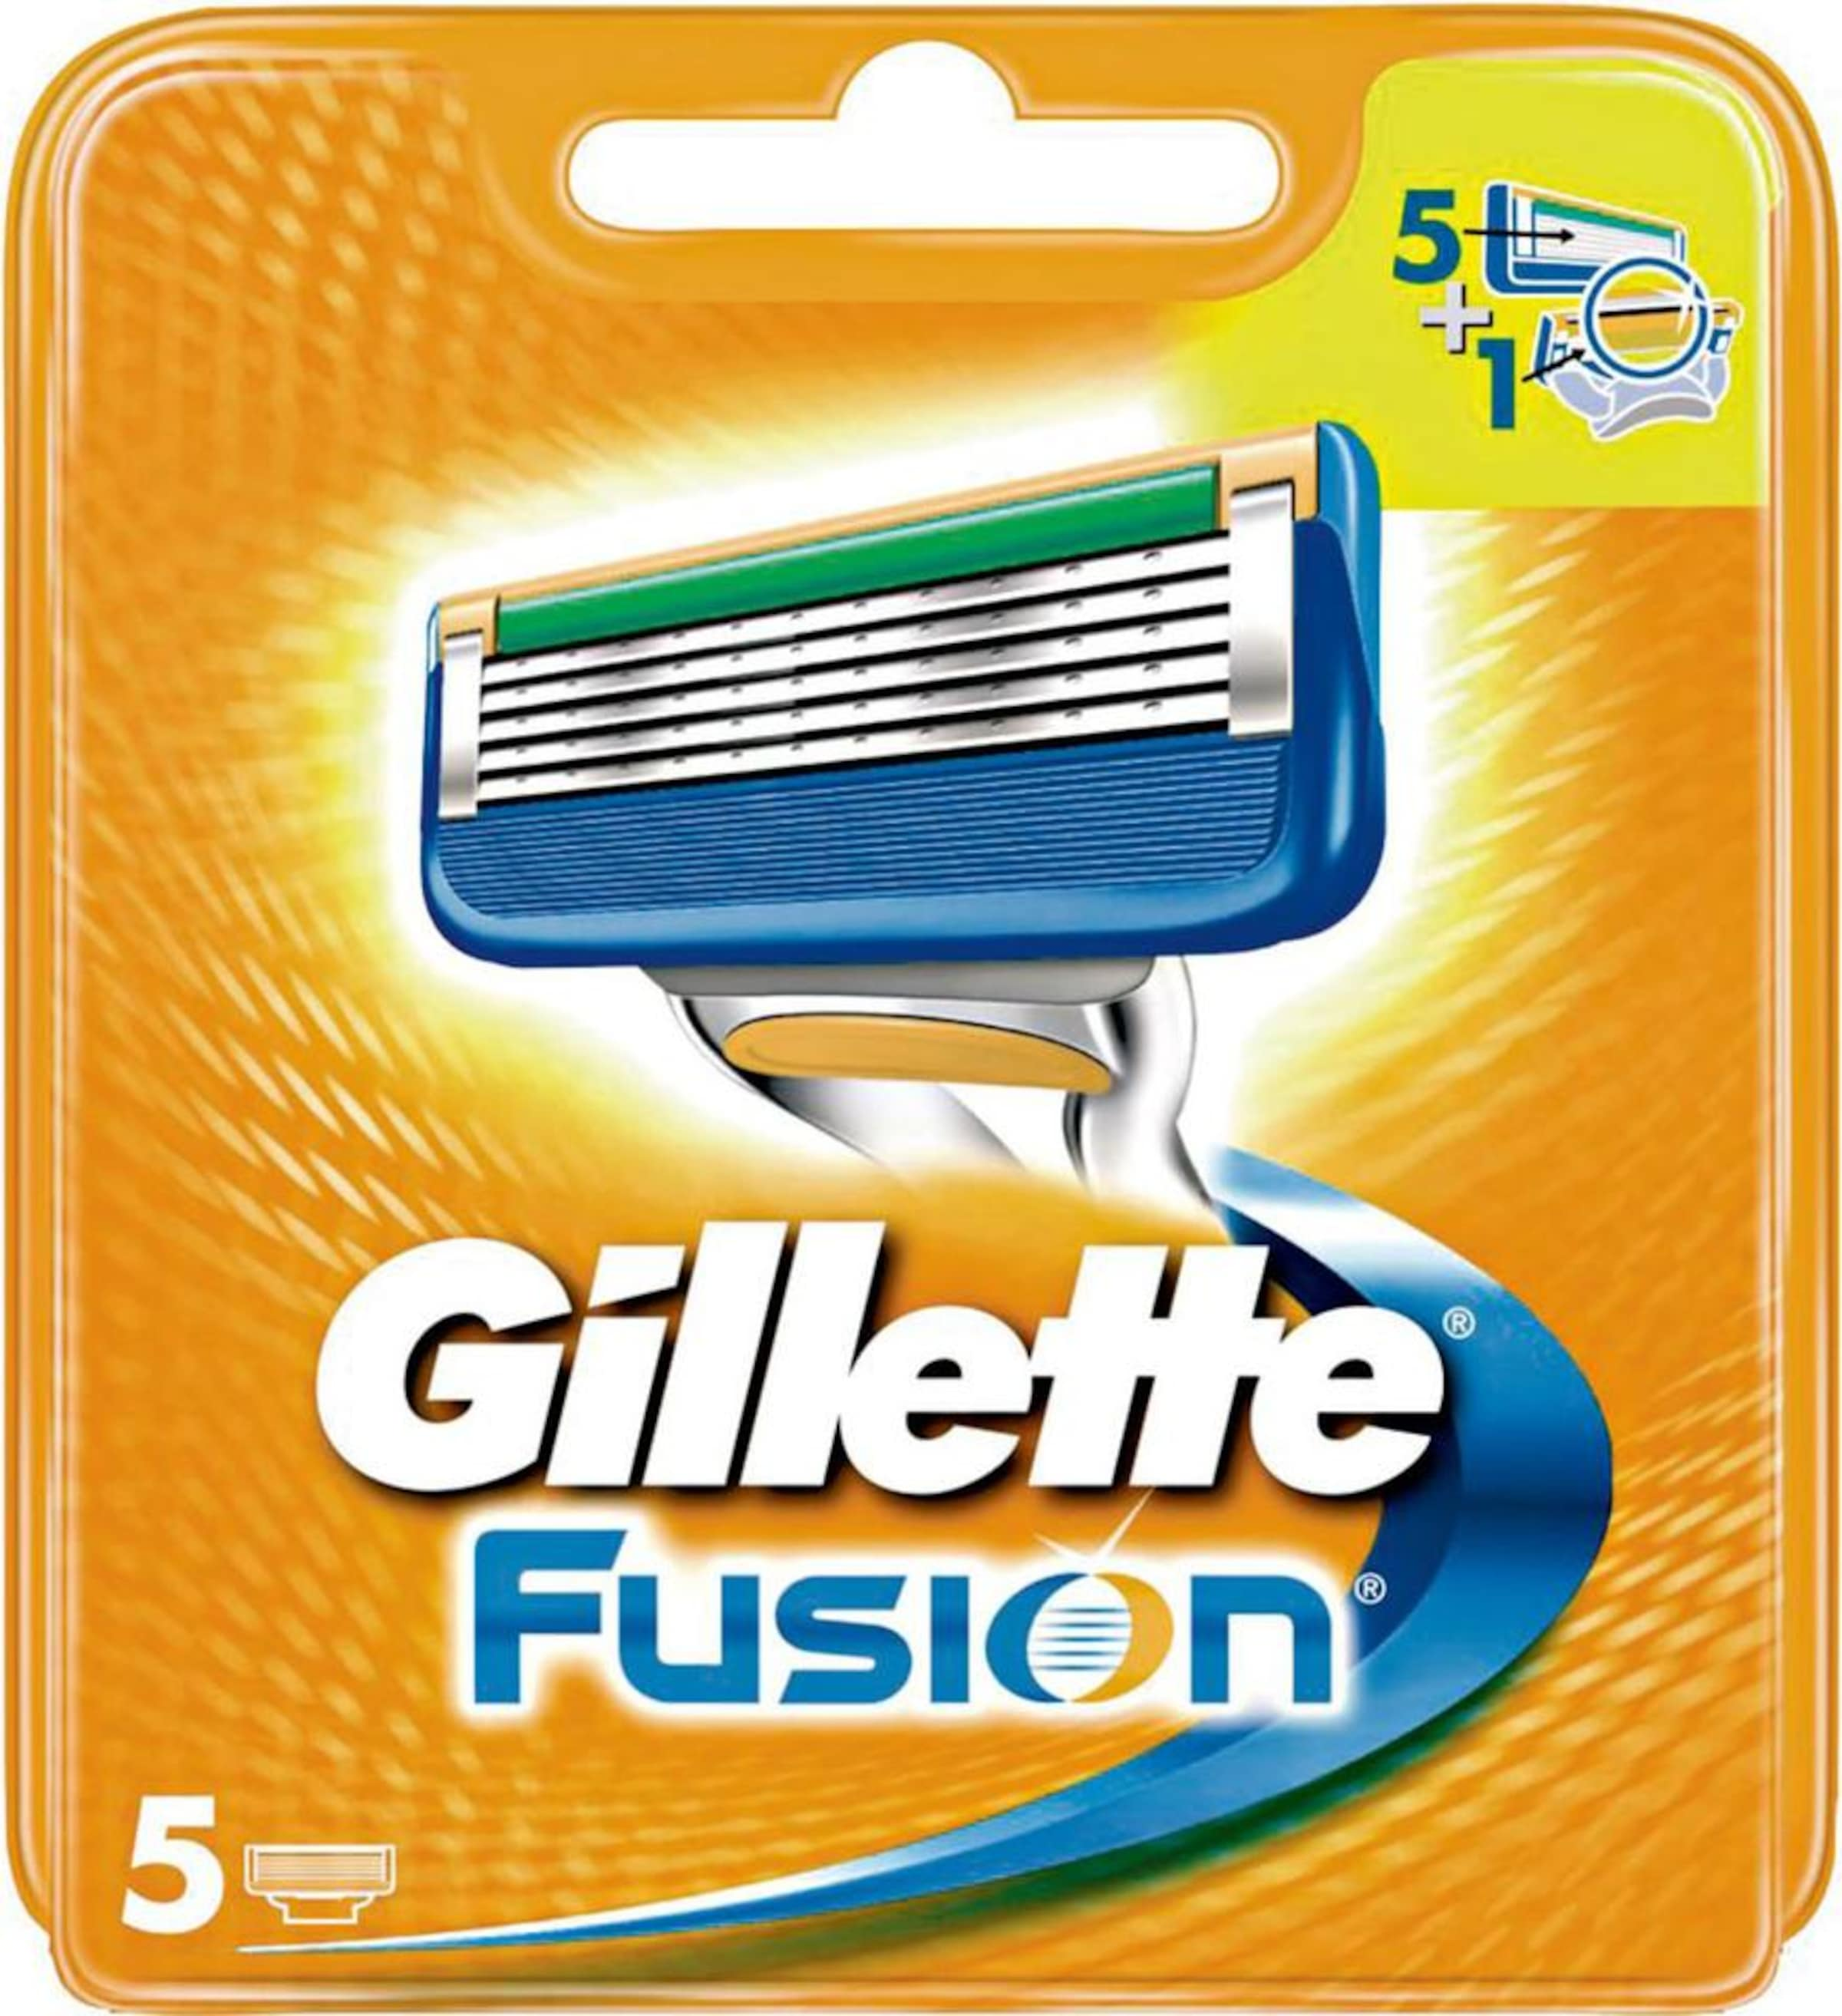 Manual'Rasierklingen5 Orange tlgIn Silber Gillette 'fusion BlauGrün OuPZTkXi